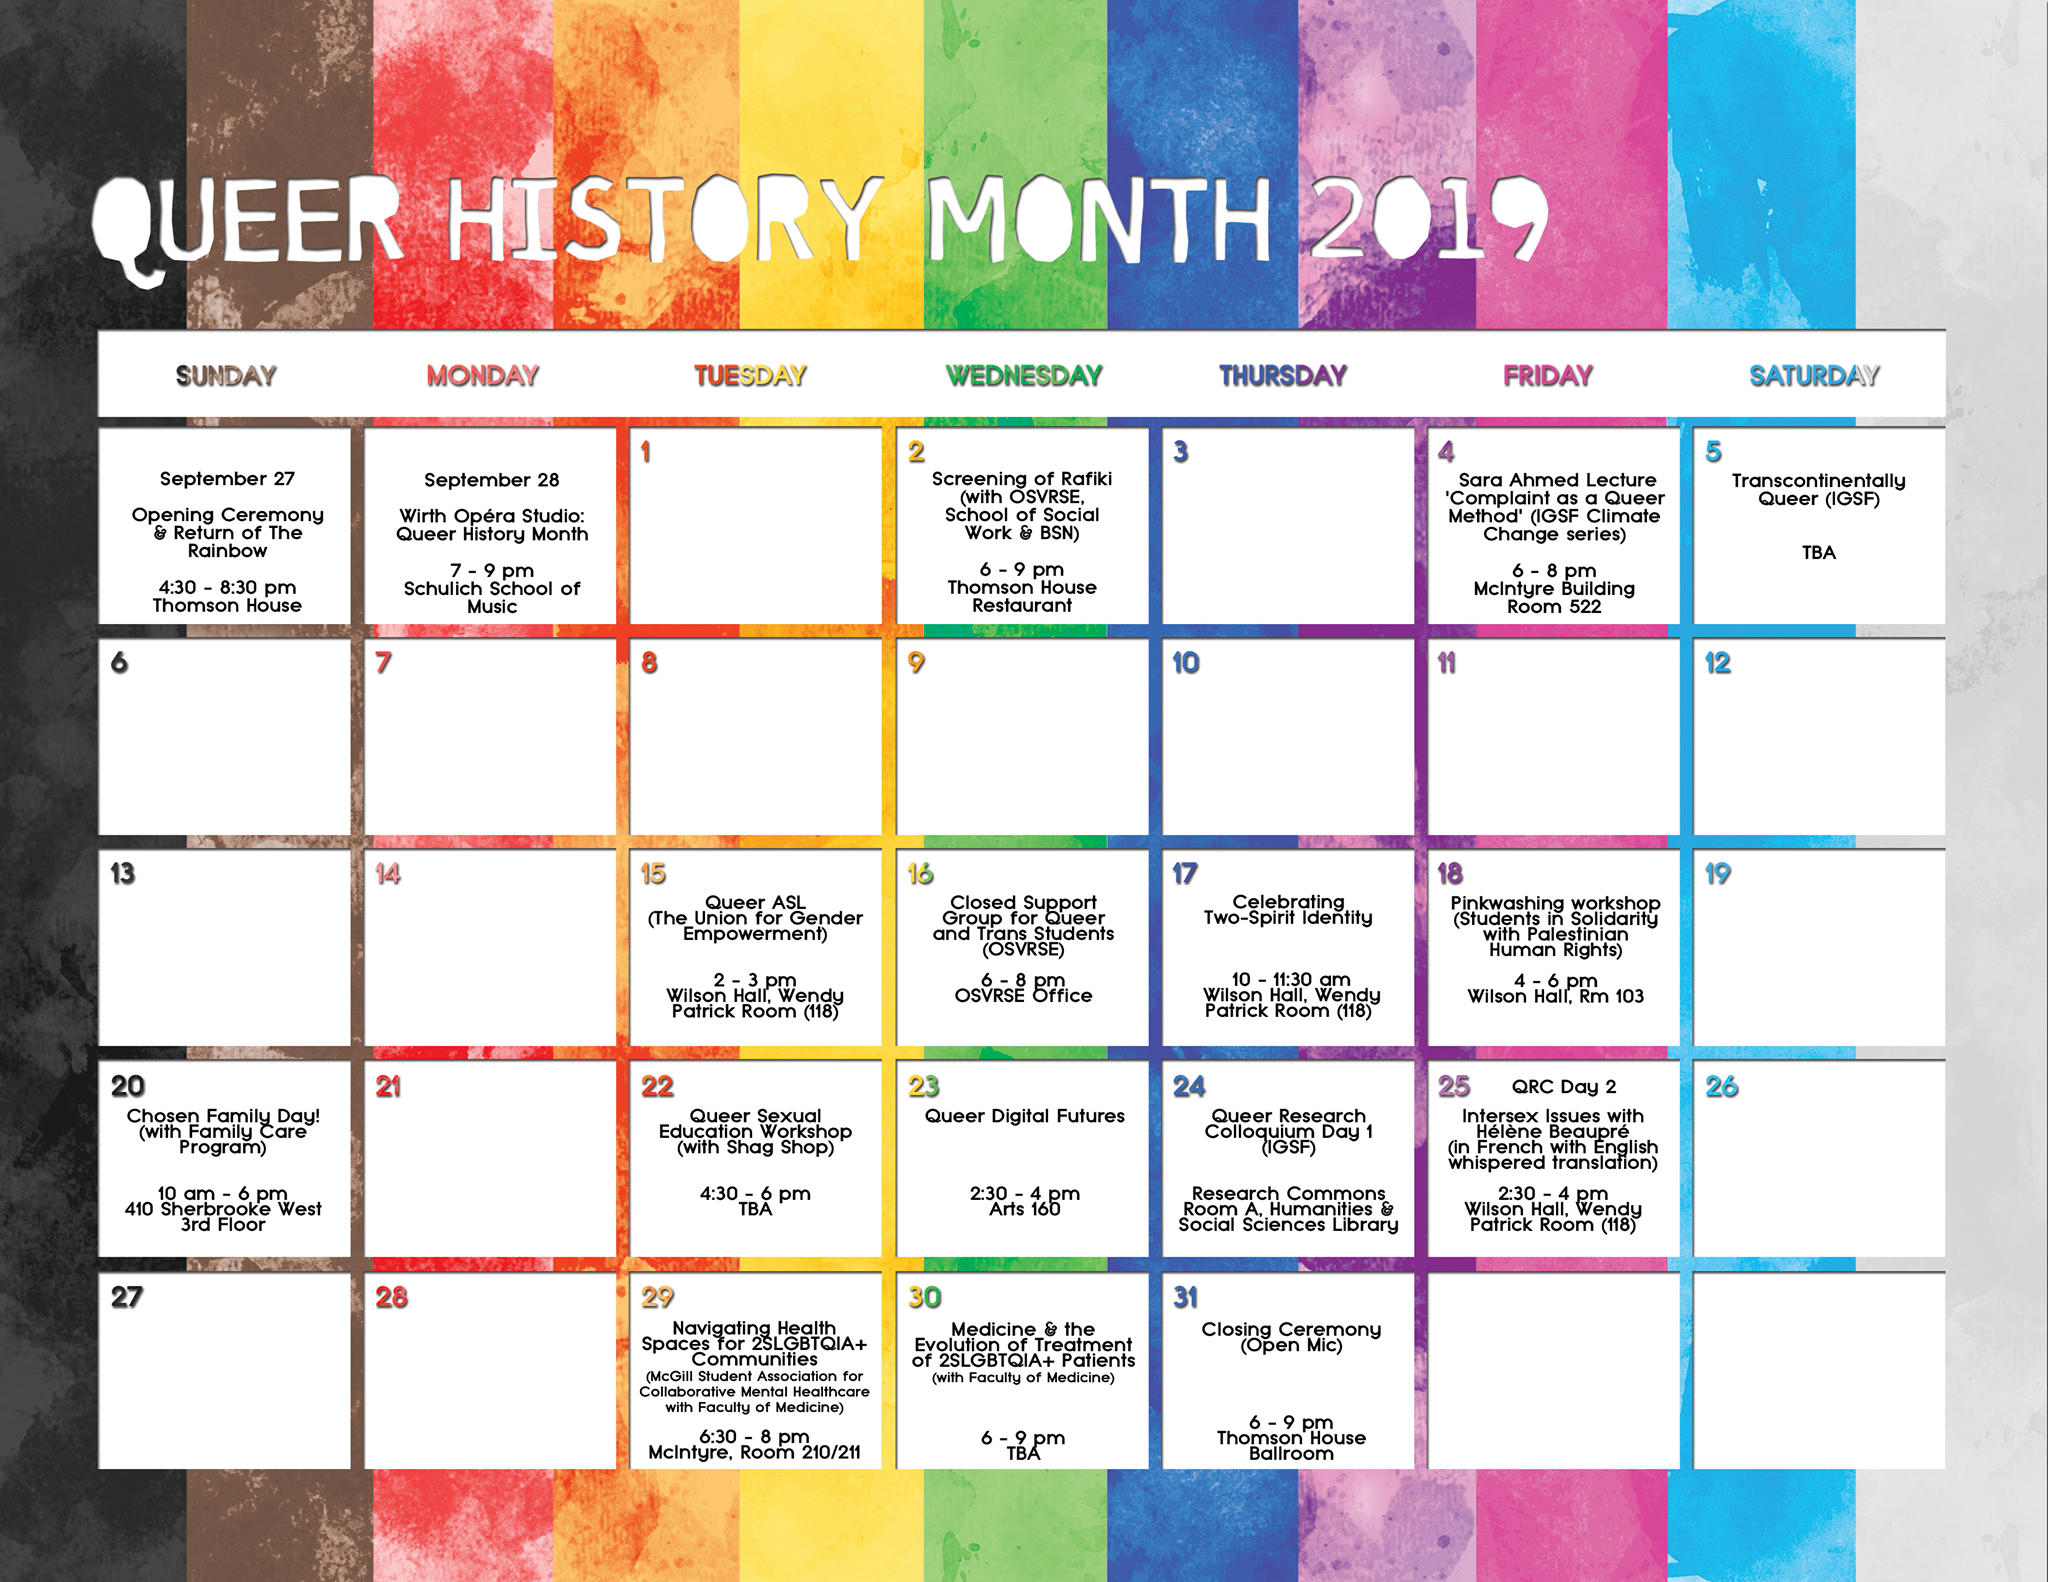 Calendar Of Events Queer History Month 2019 | Subcommittee regarding Max 30 Calendar Month 2